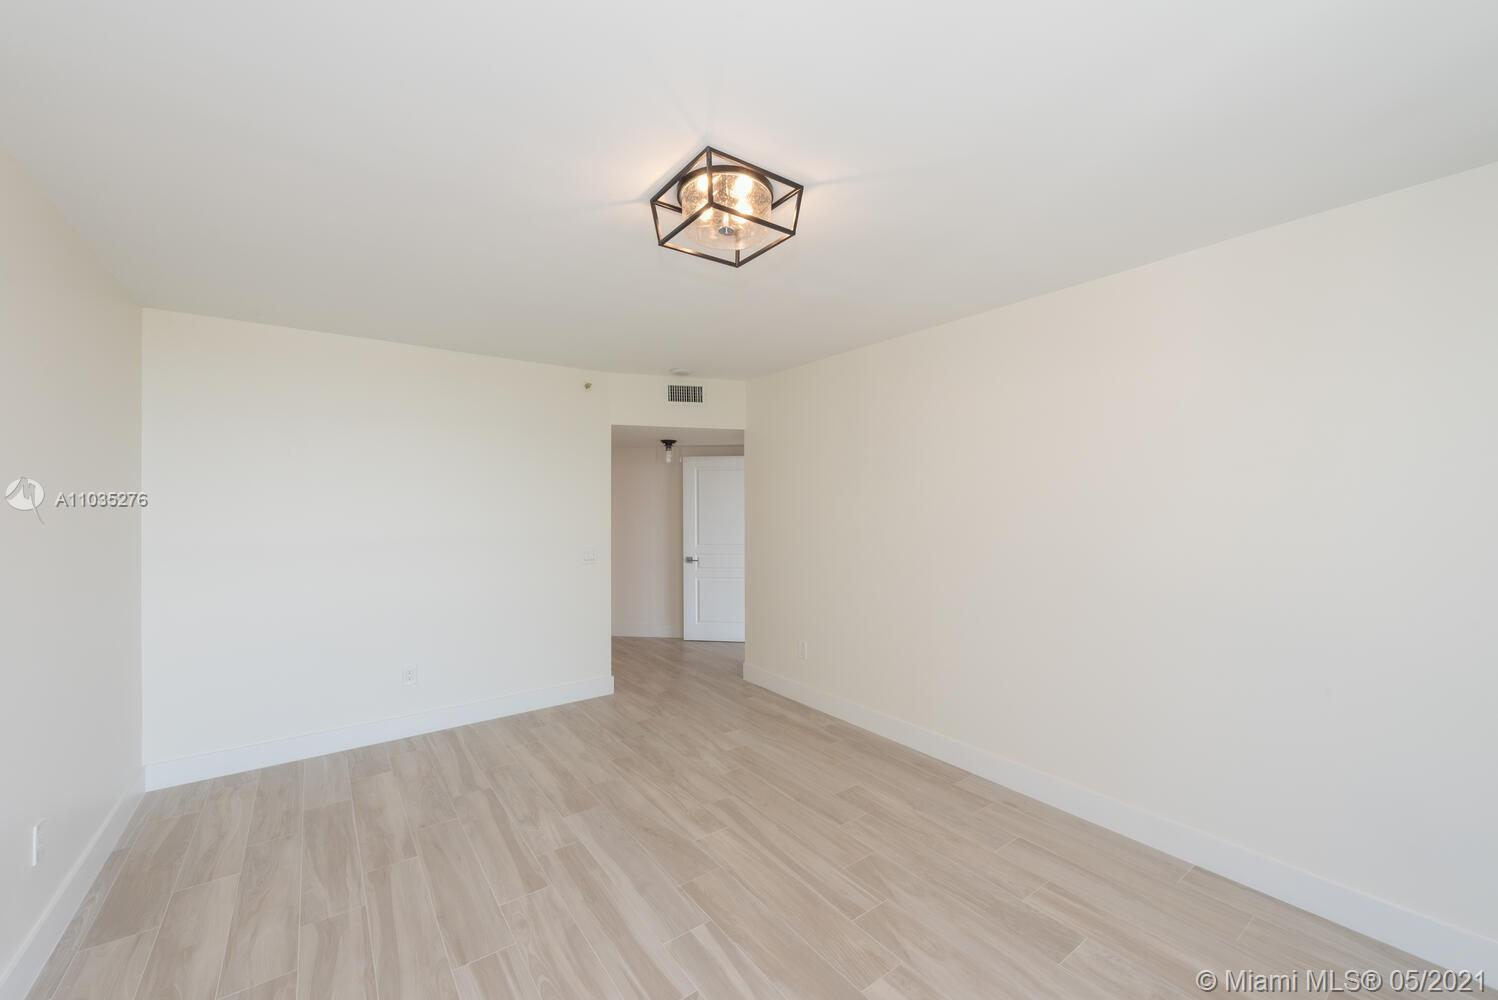 Photo of 8925 Collins Ave #4F, Surfside, Florida, 33154 - View to the north.